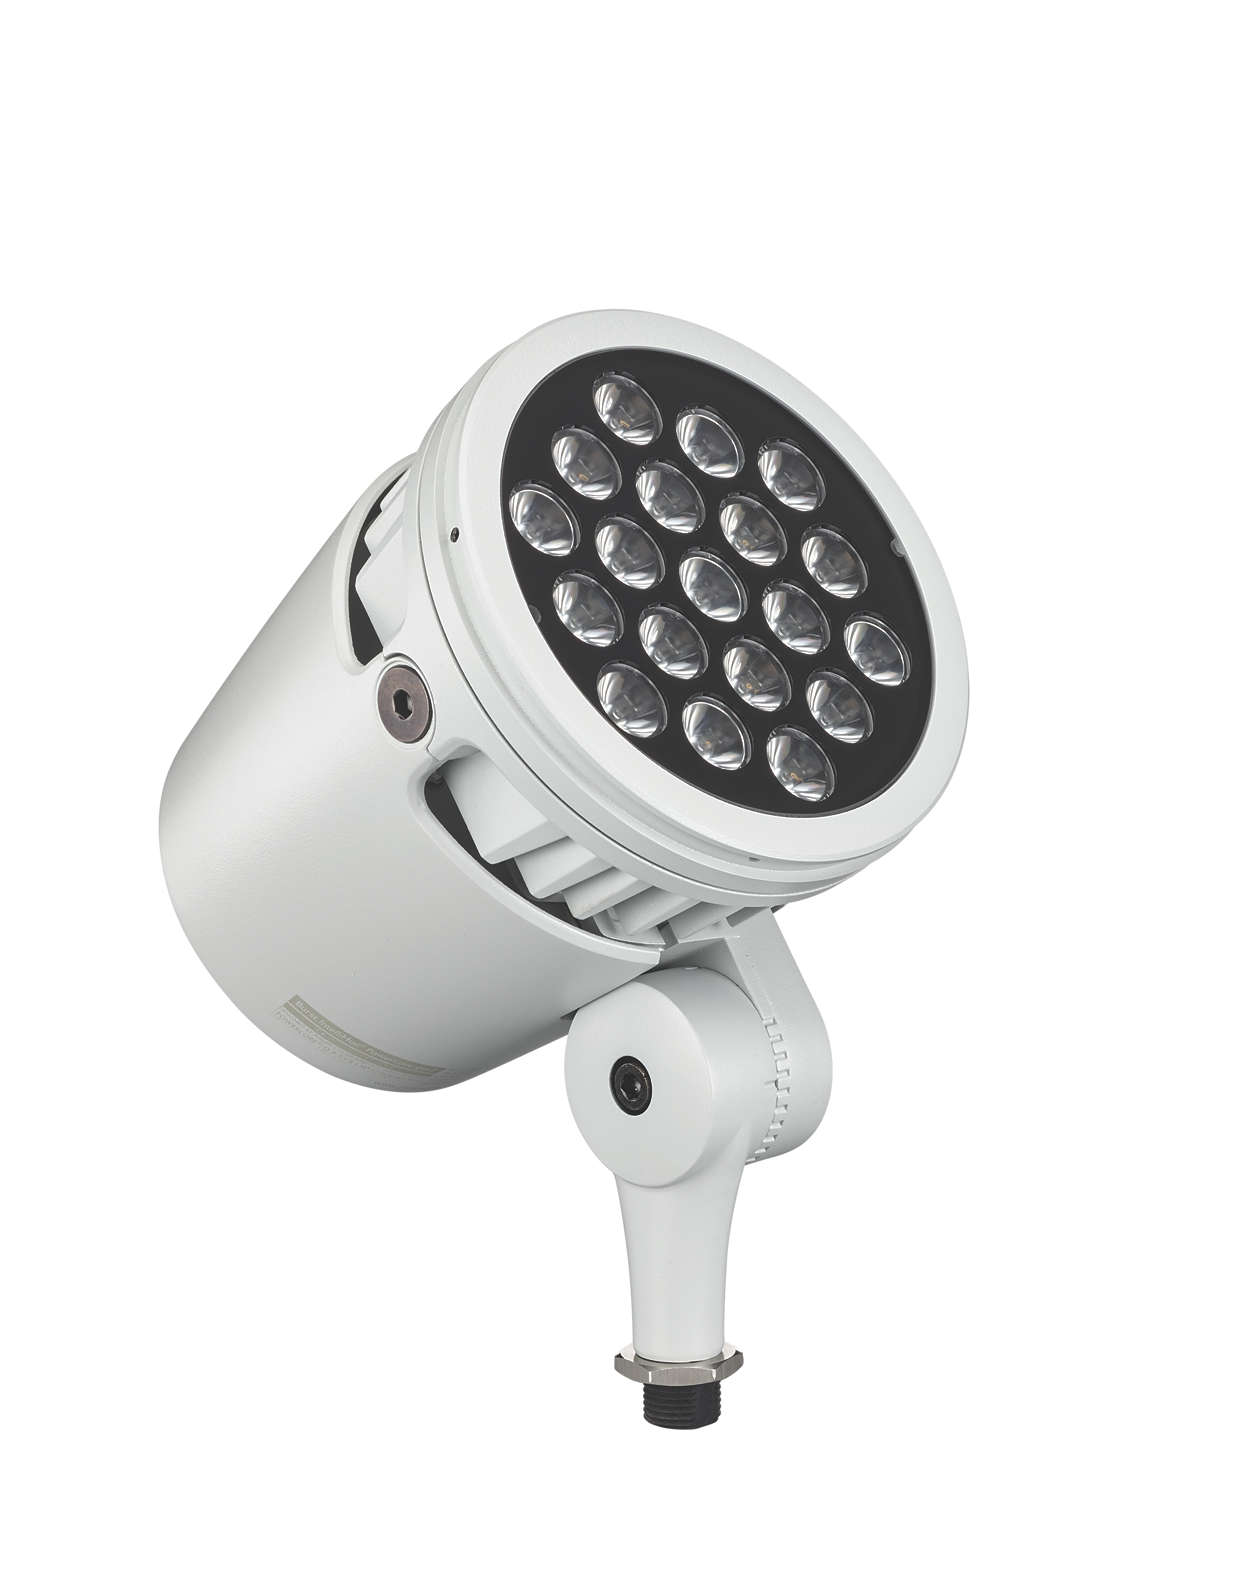 Architectural LED spotlight with intelligent white and colour light